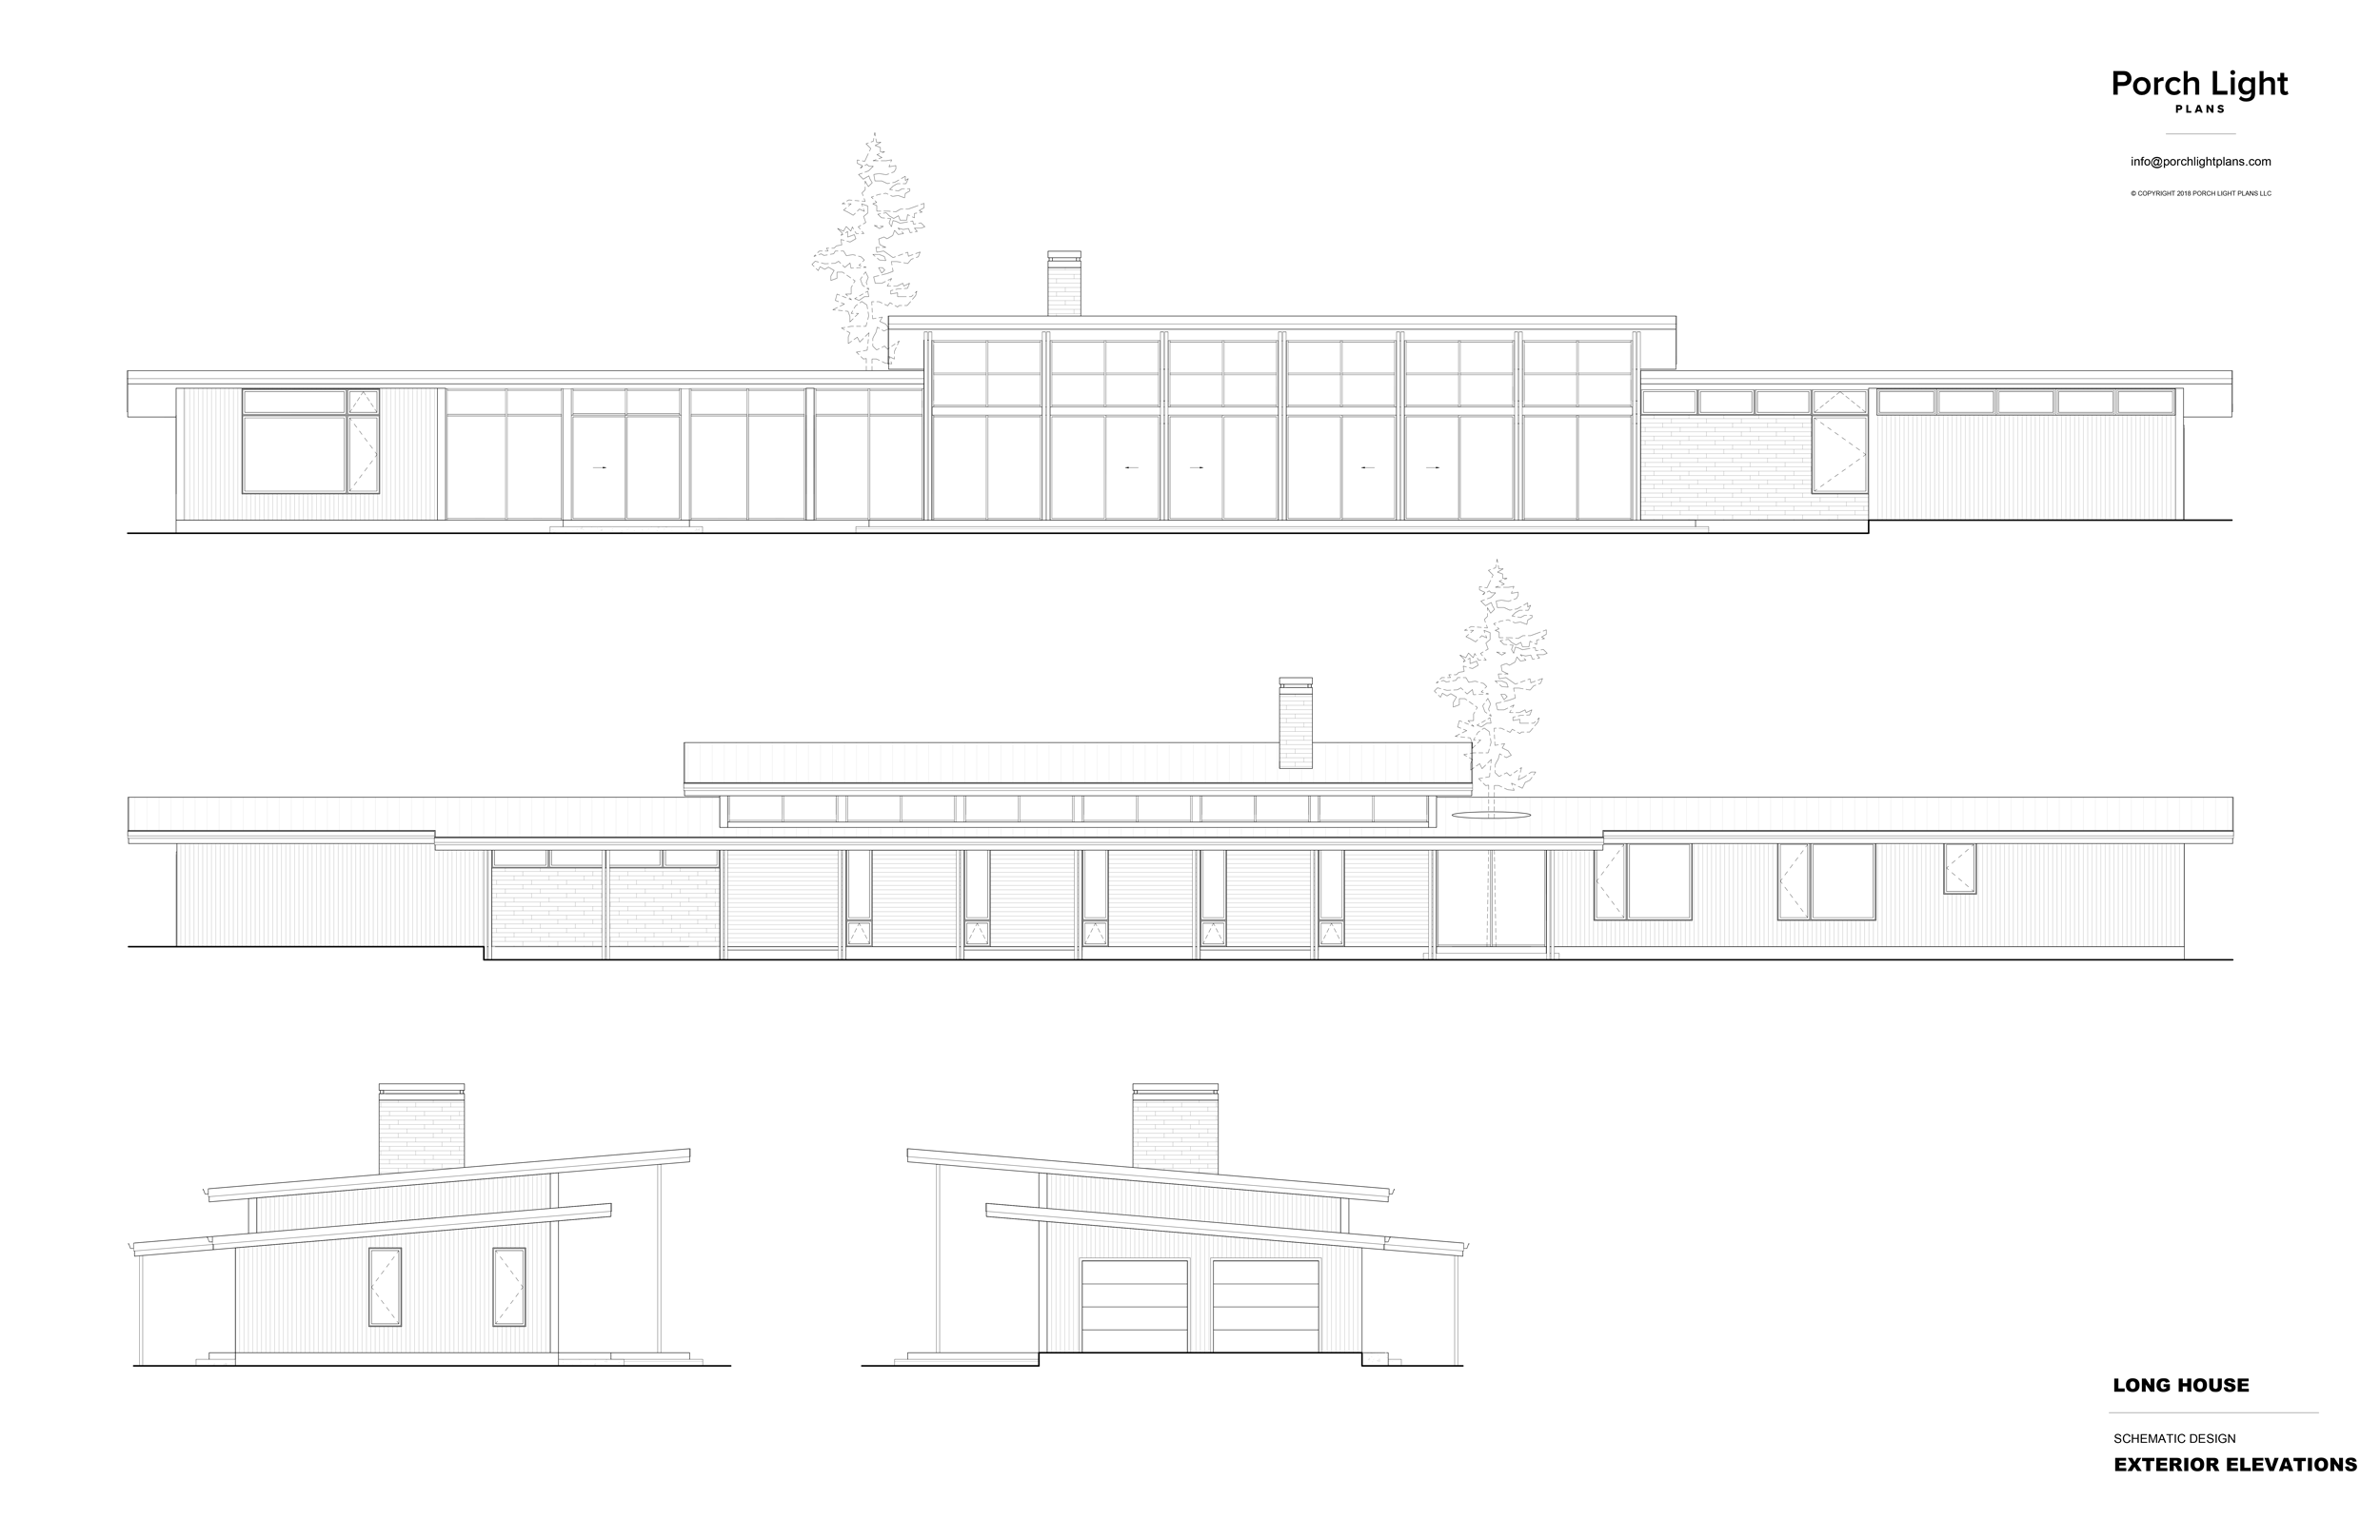 long-house-elevations.png